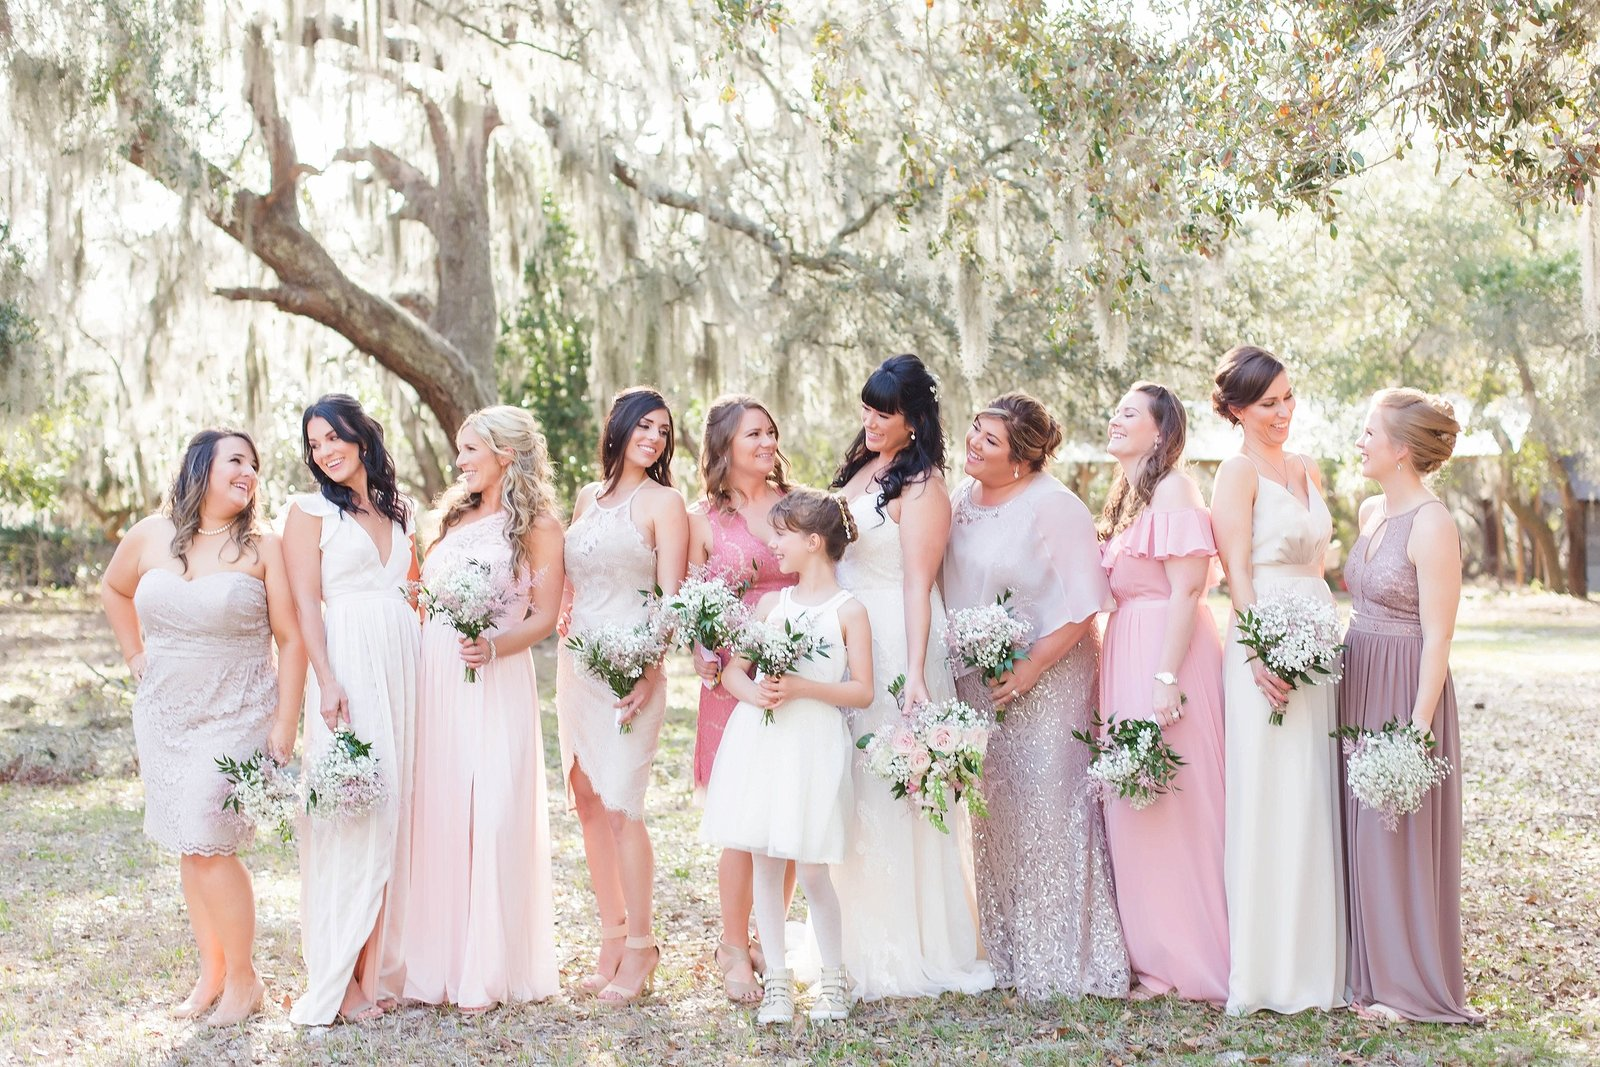 blush and ivory wedding party photo blush bridesmaid dresses wedding photography by kimberly photography